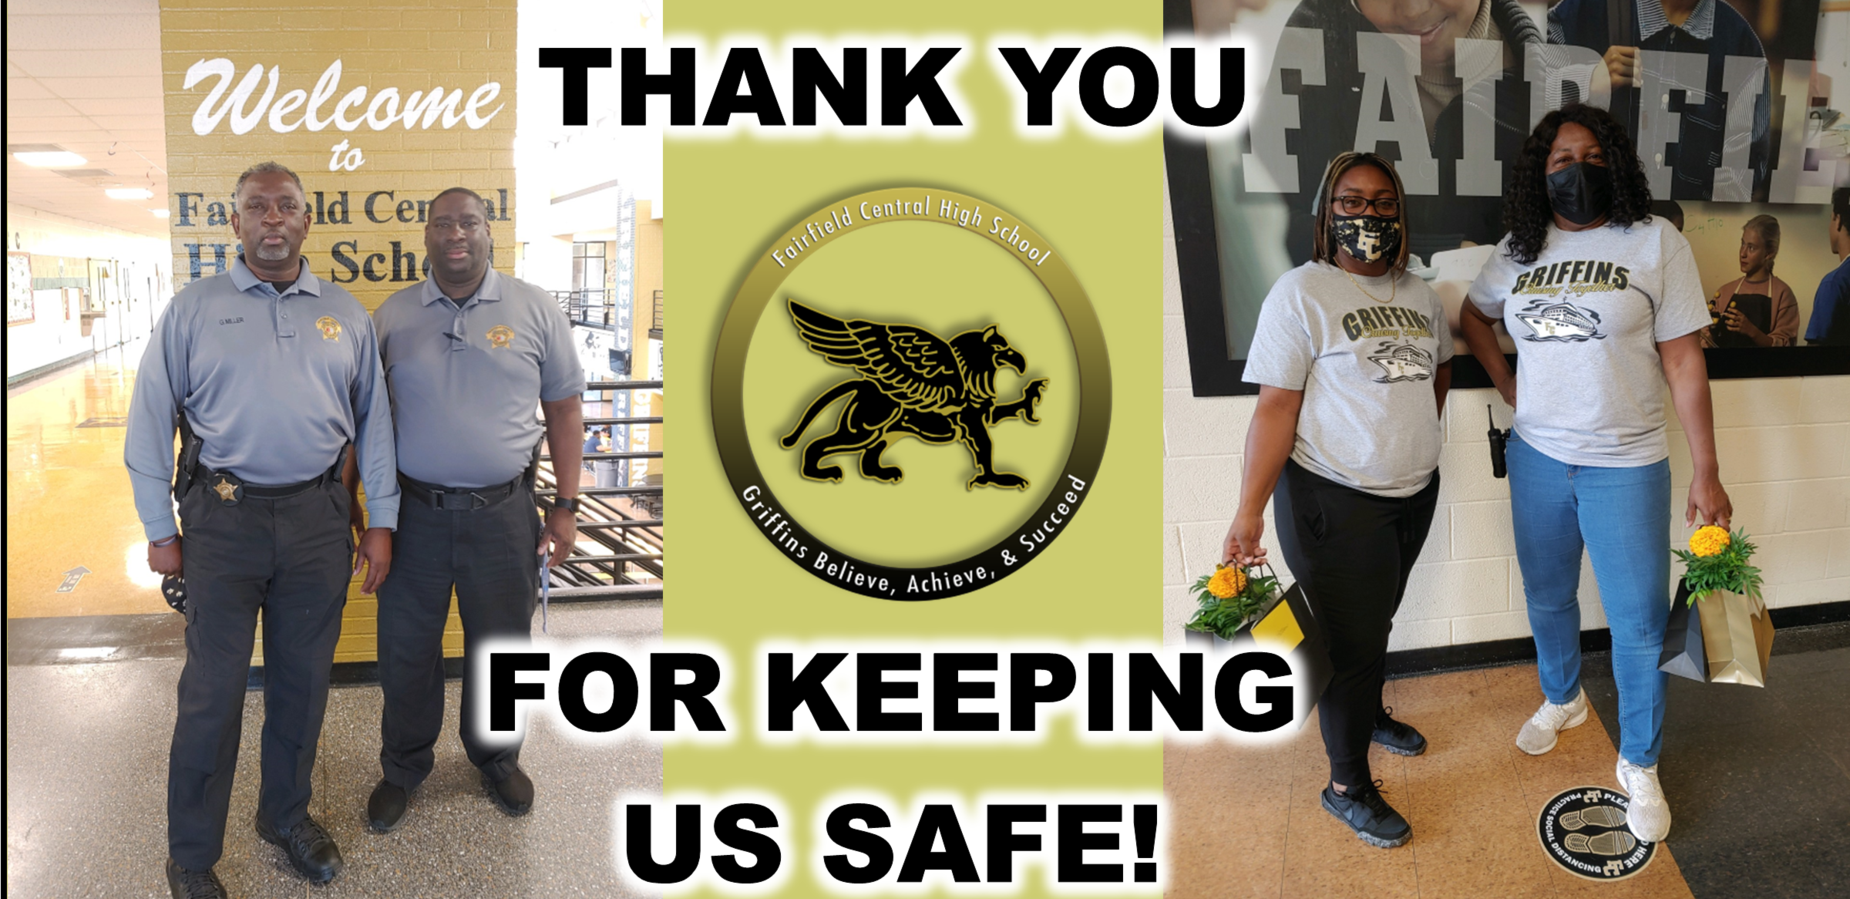 Thank you for keeping us safe!